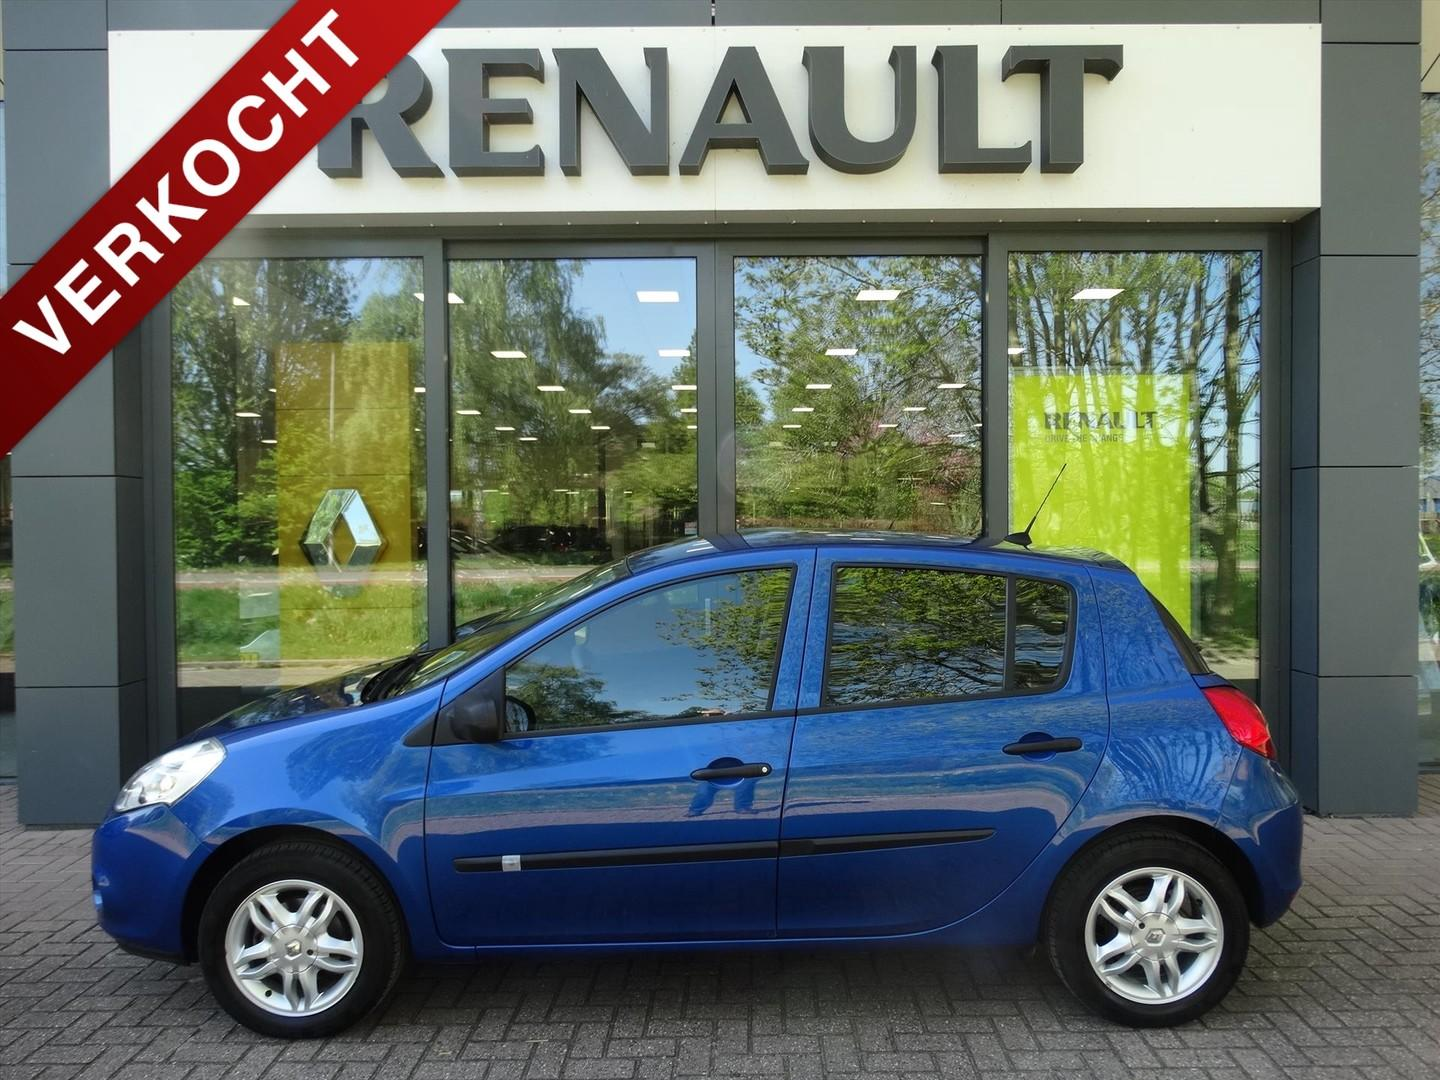 Renault Clio Iii 5-drs tce 100 special line